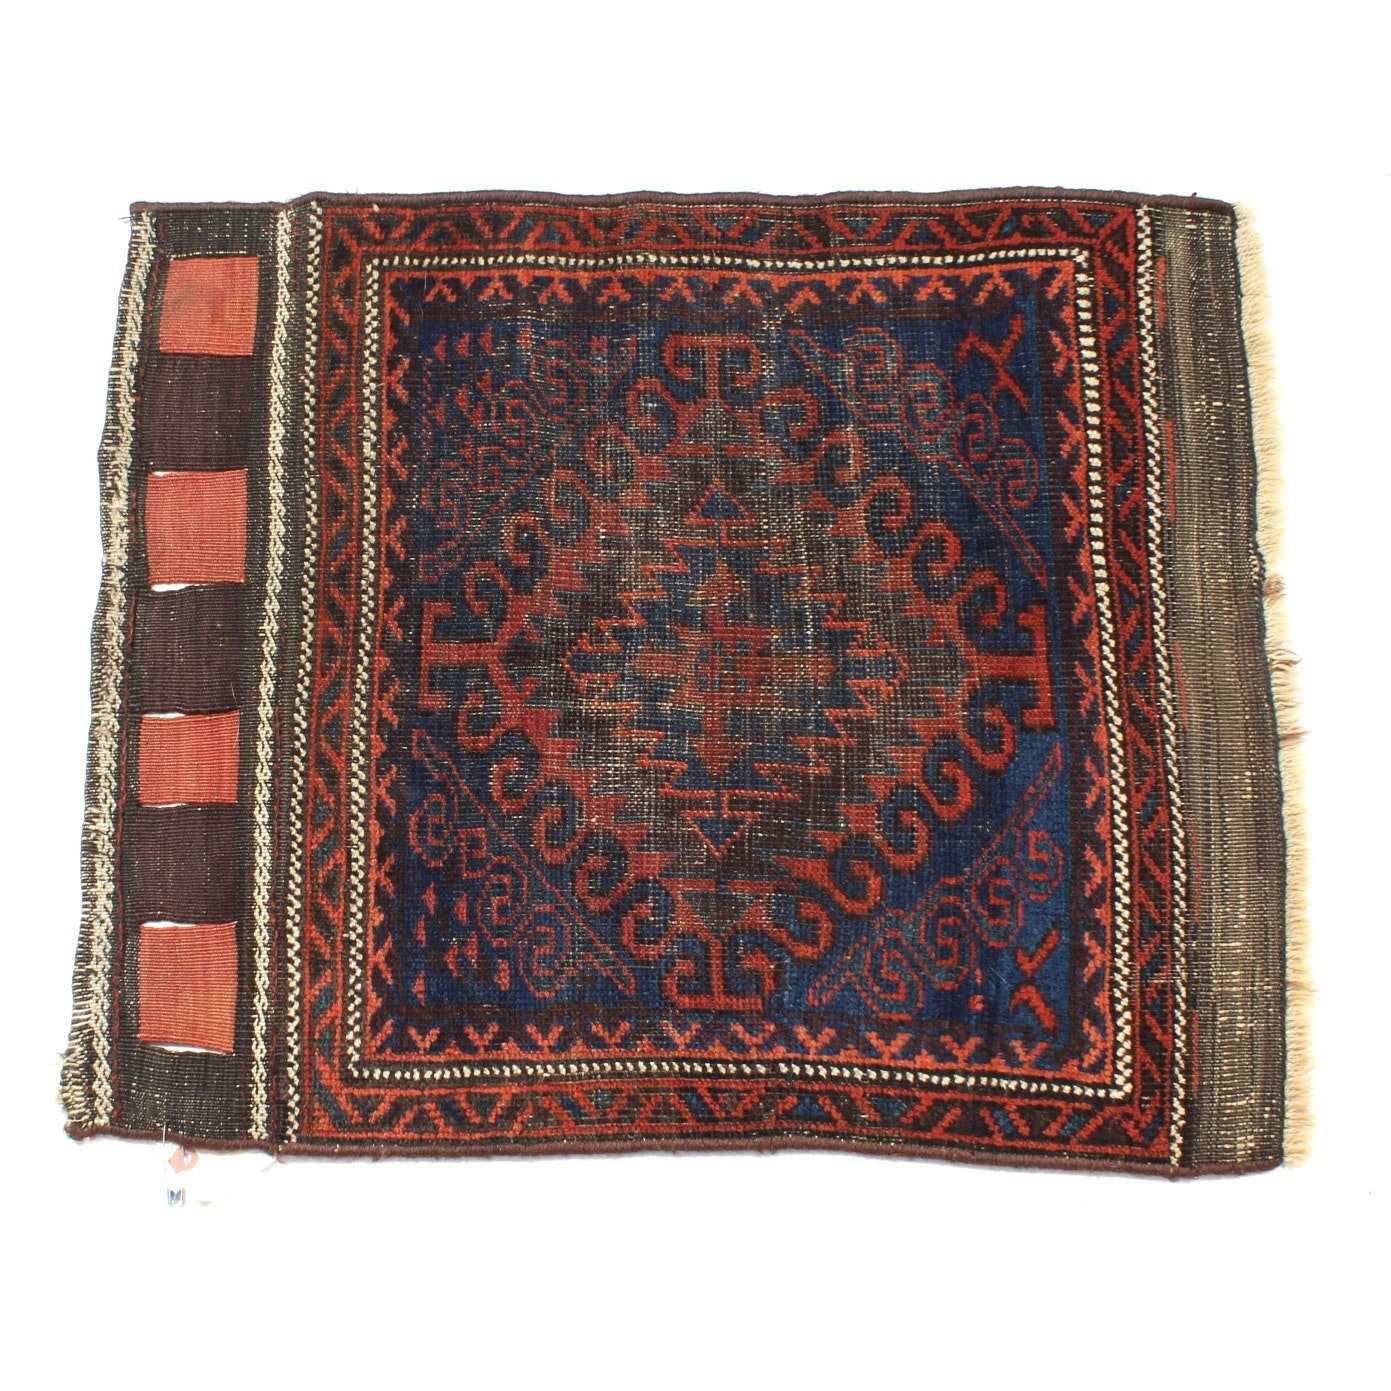 Antique Hand-Knotted Persian Baluch Accent Rug